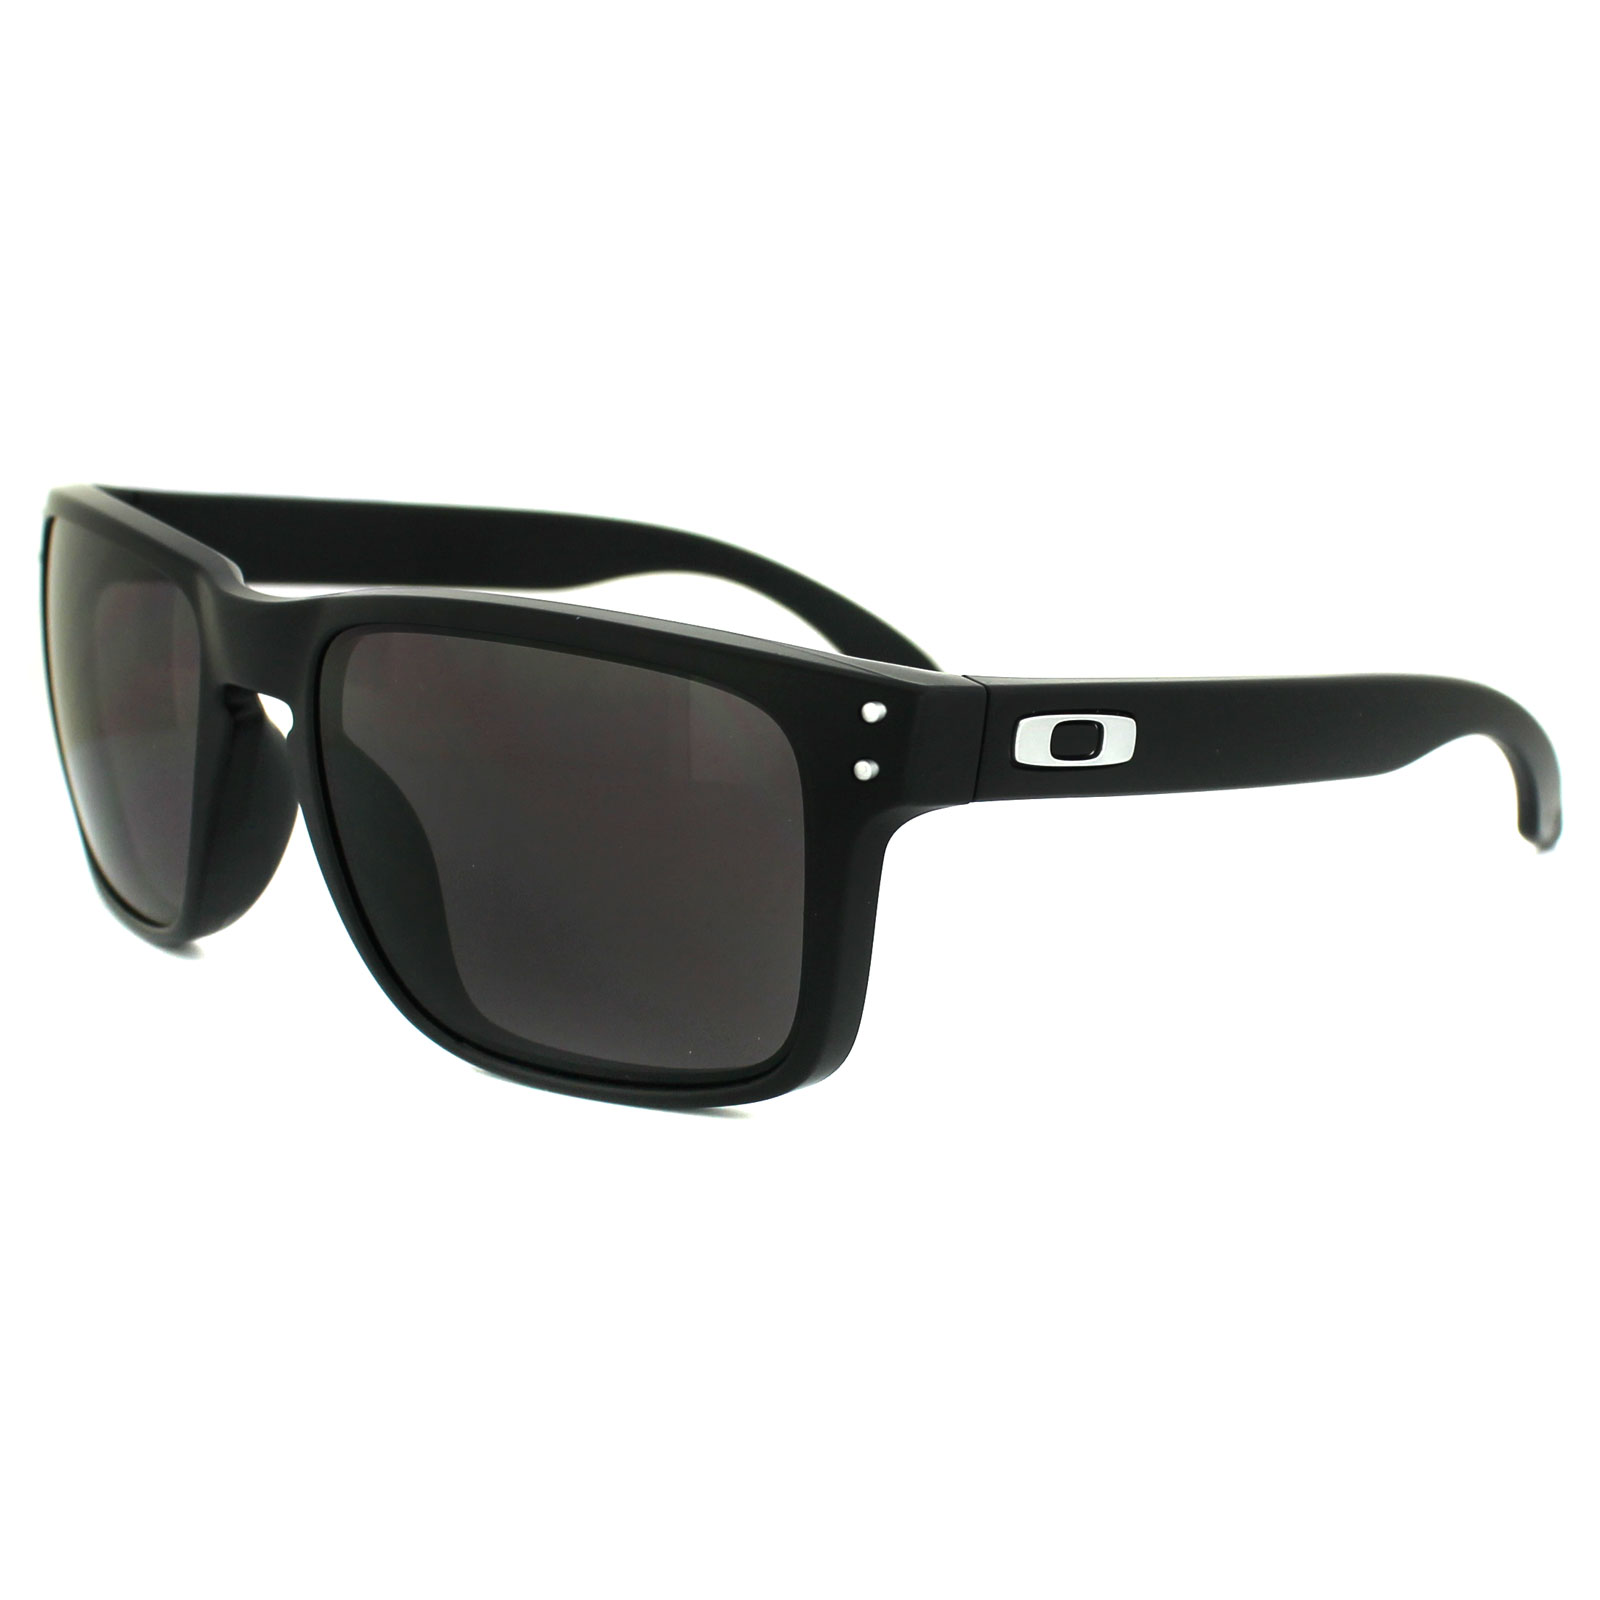 sunglasses cheap oakley  oakley holbrook sunglasses